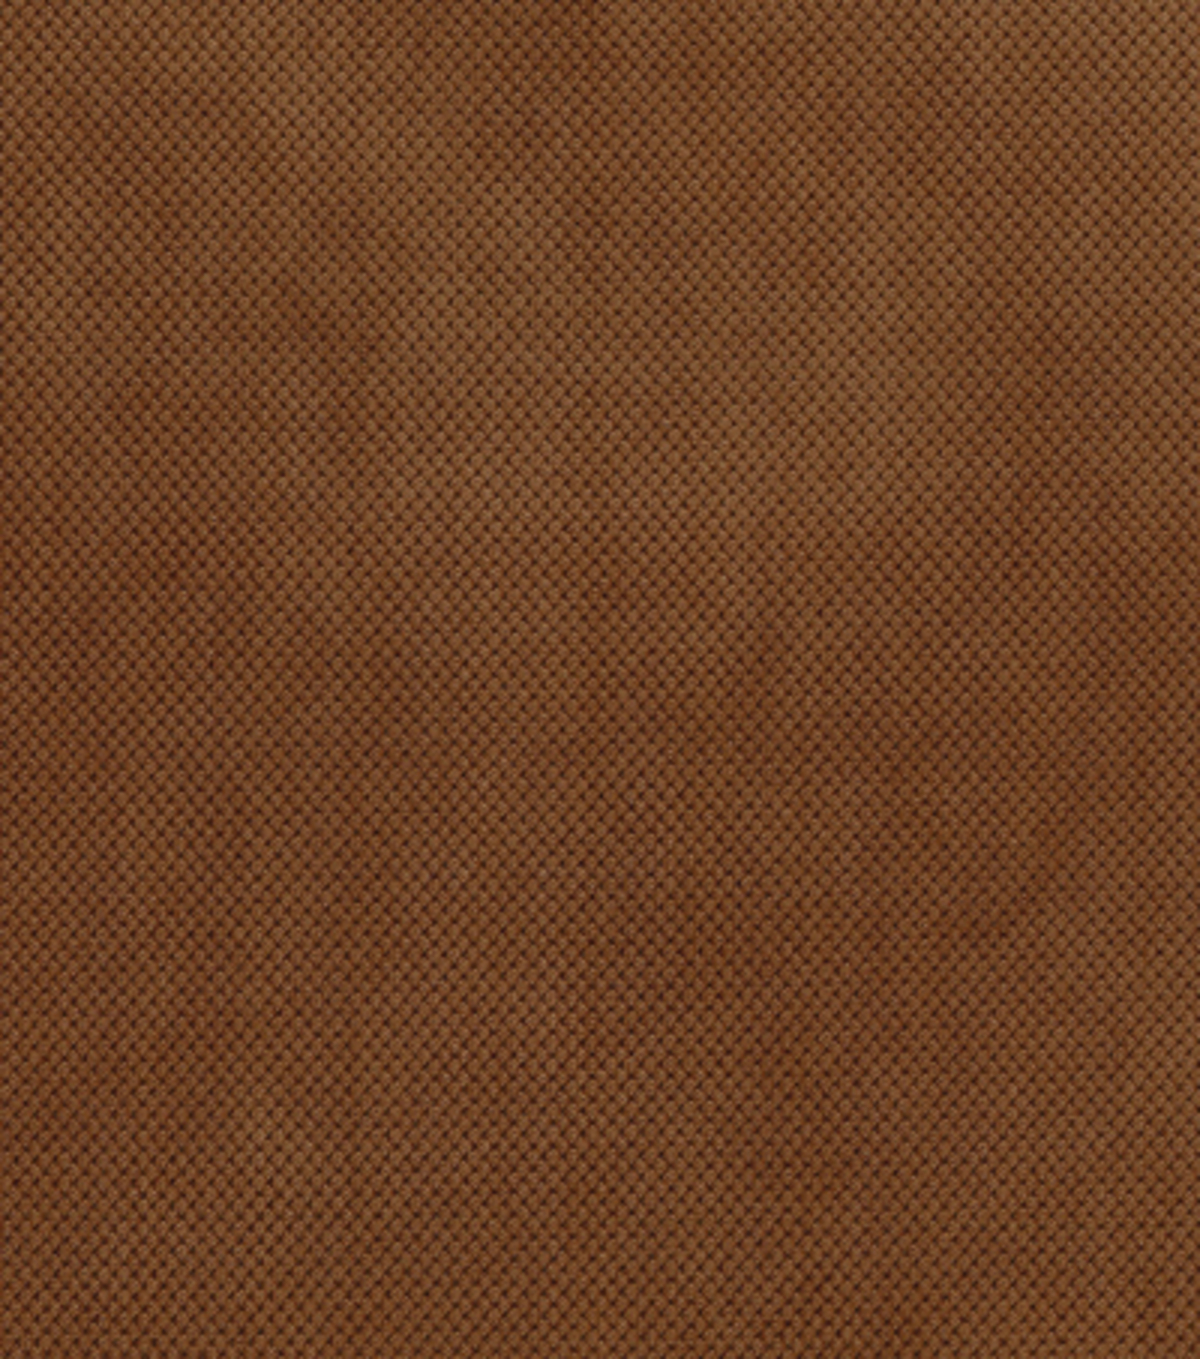 Home Decor 8\u0022x8\u0022 Fabric Swatch-Richloom Sig Series Bradford Nutmeg